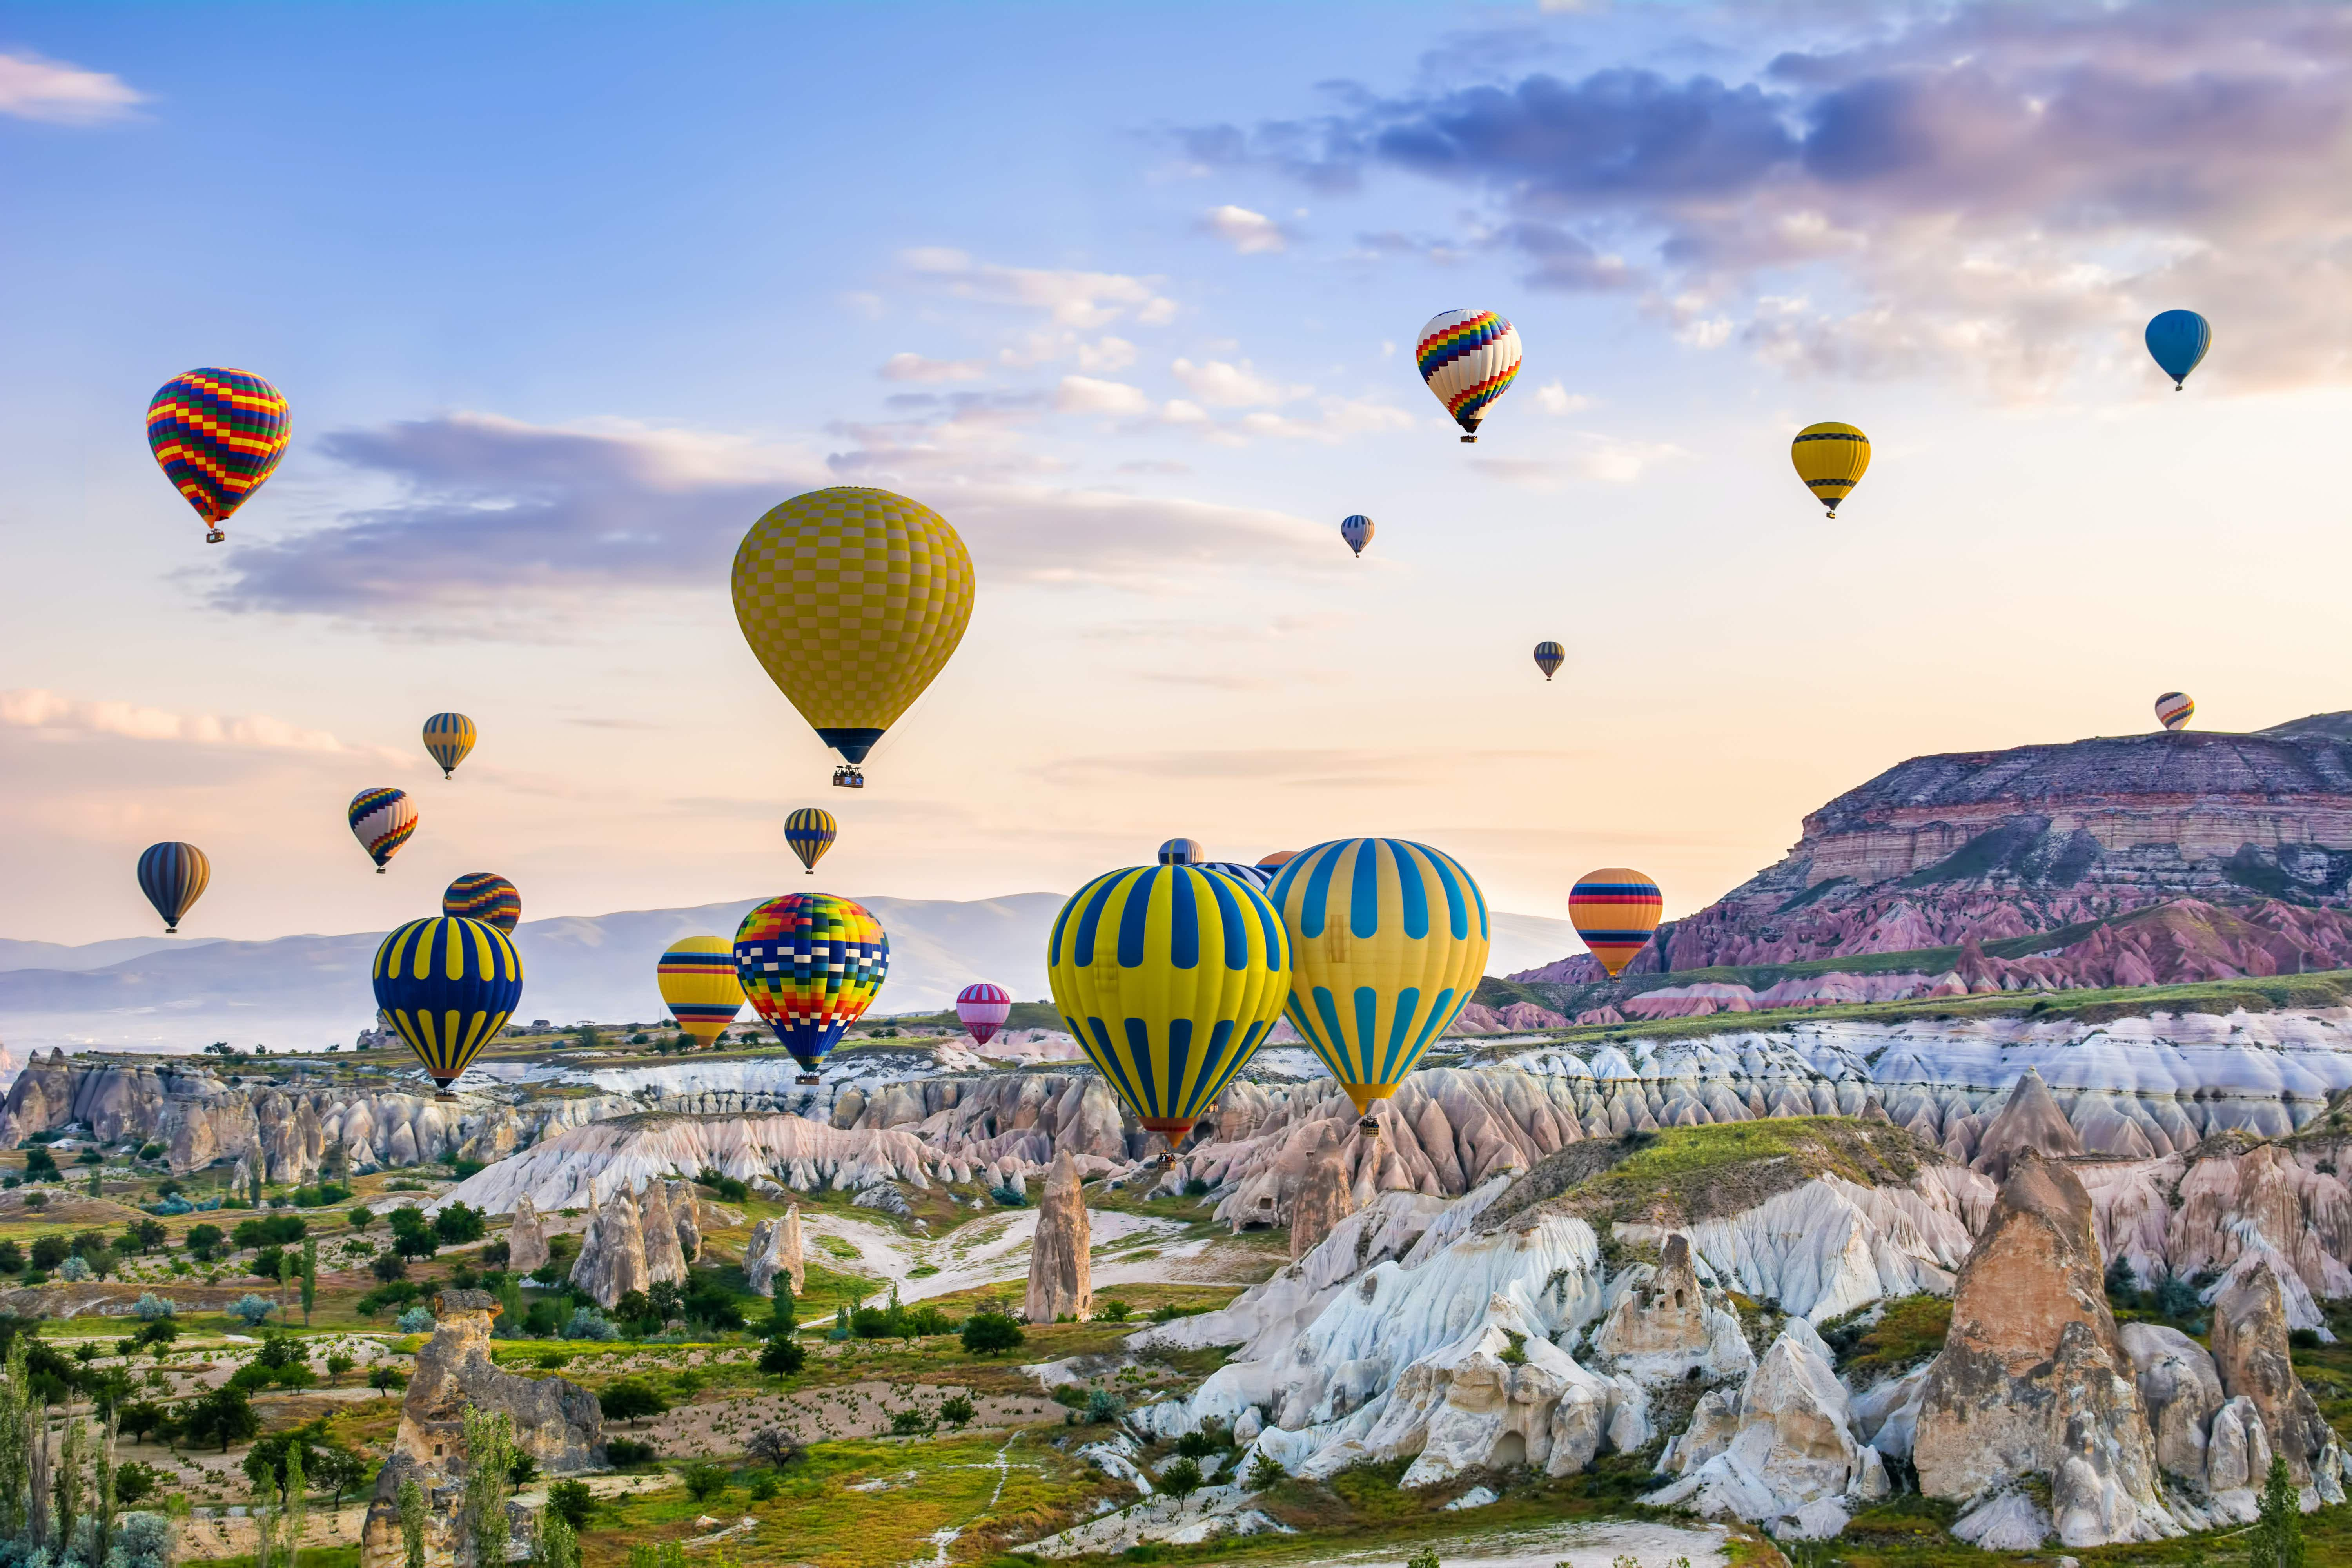 With fascinating cultural heritage, stunning scenery and bustling cities, Turkey has something for every kind of traveller